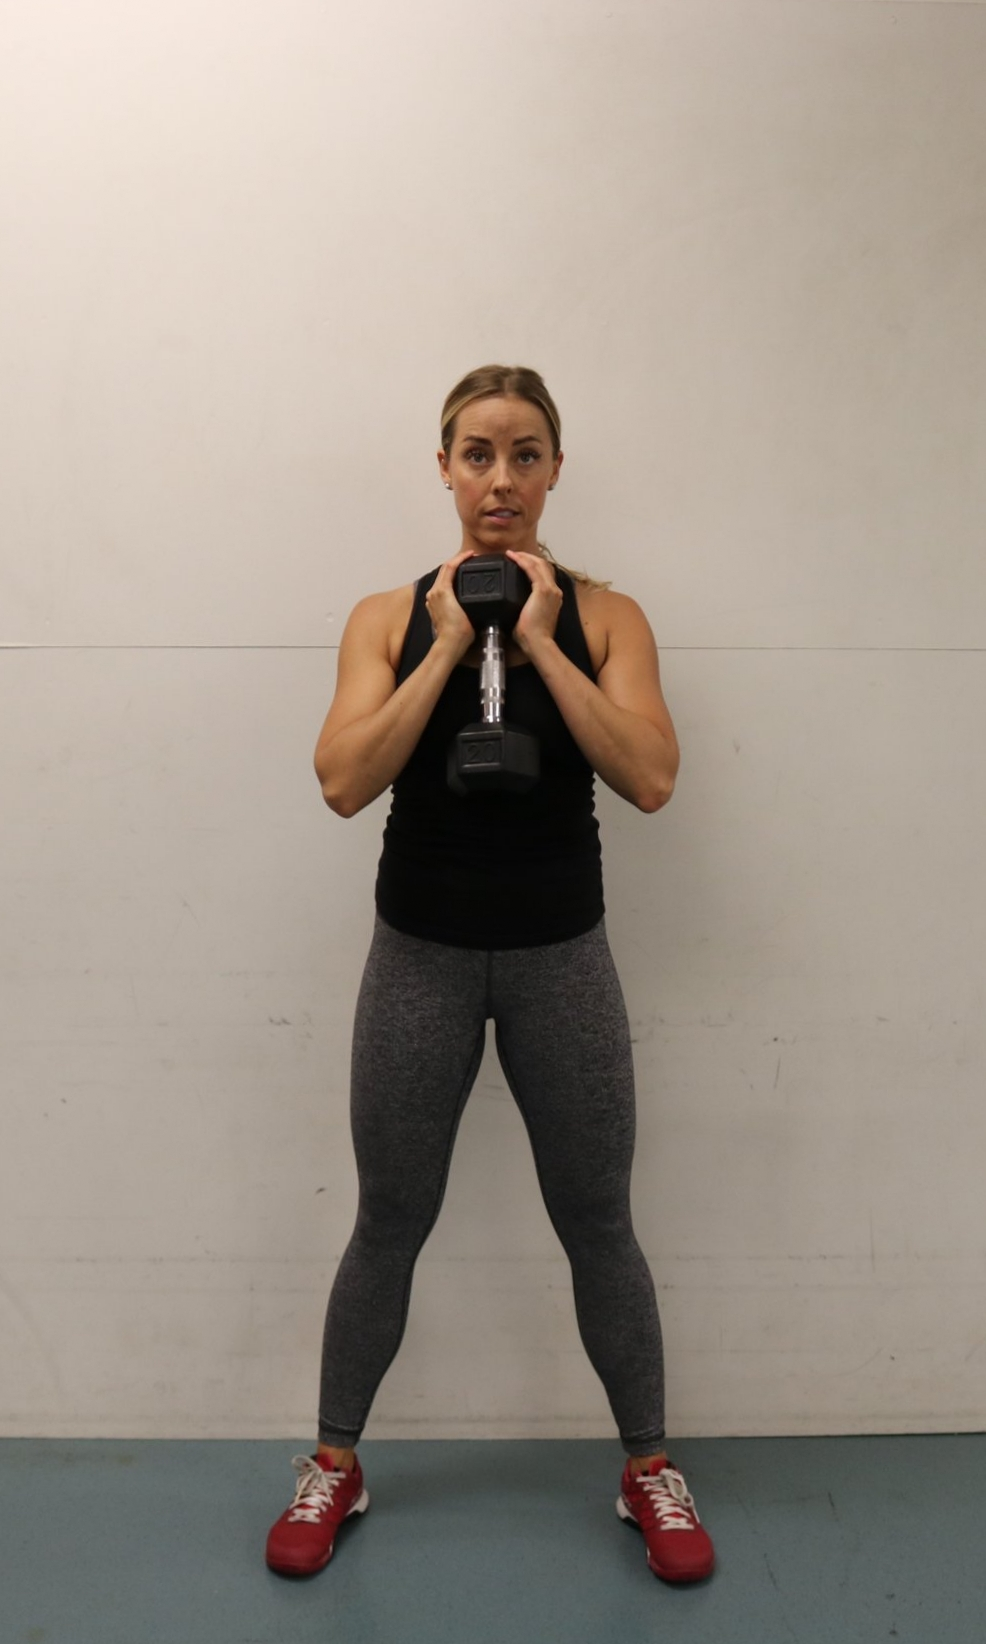 Top position, holding dumbbell in 'goblet' grip